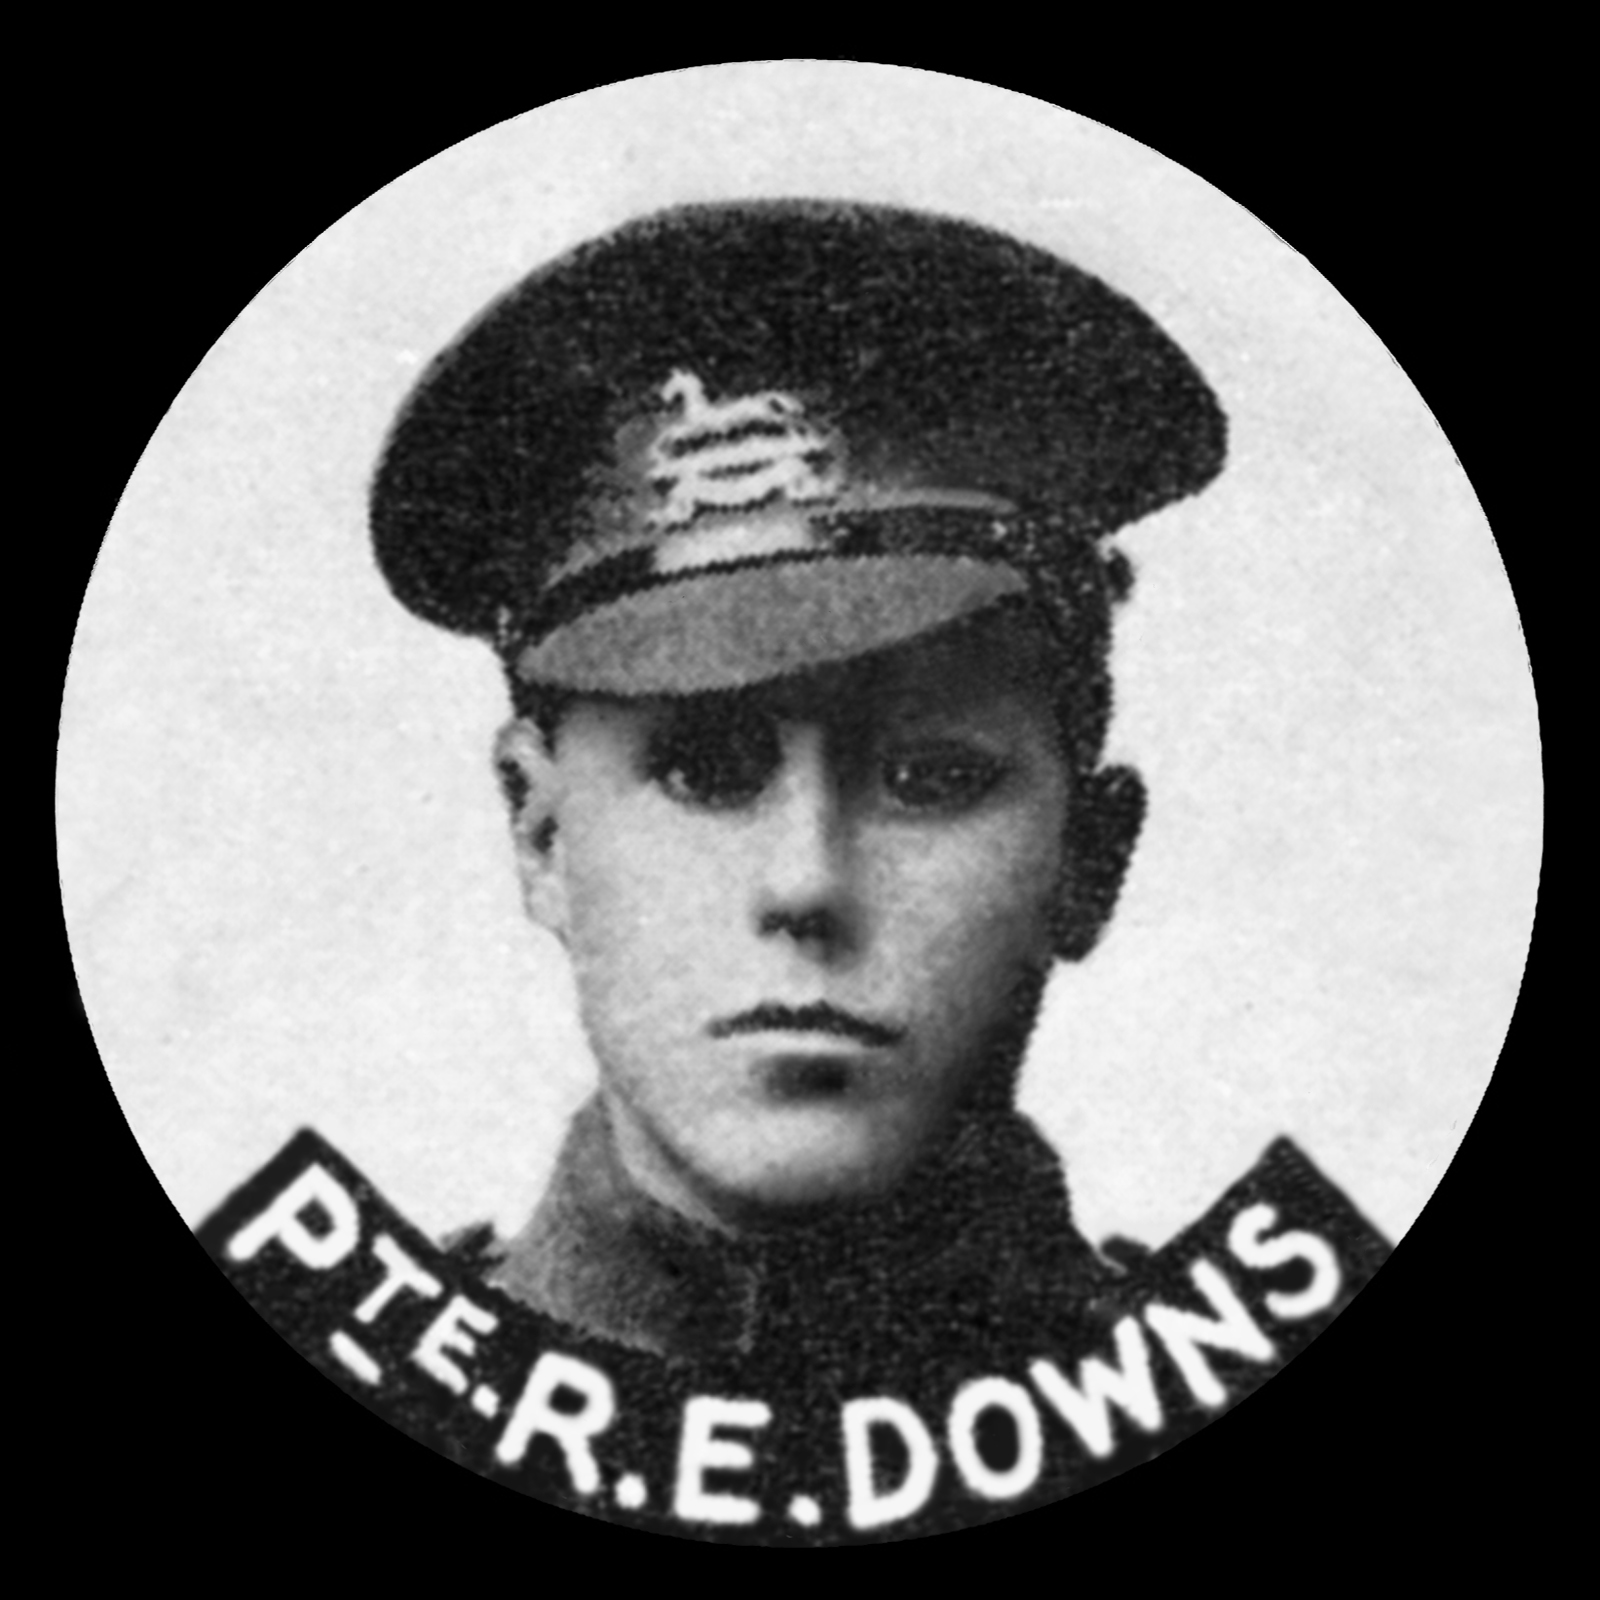 DOWNS Reginald Ernest